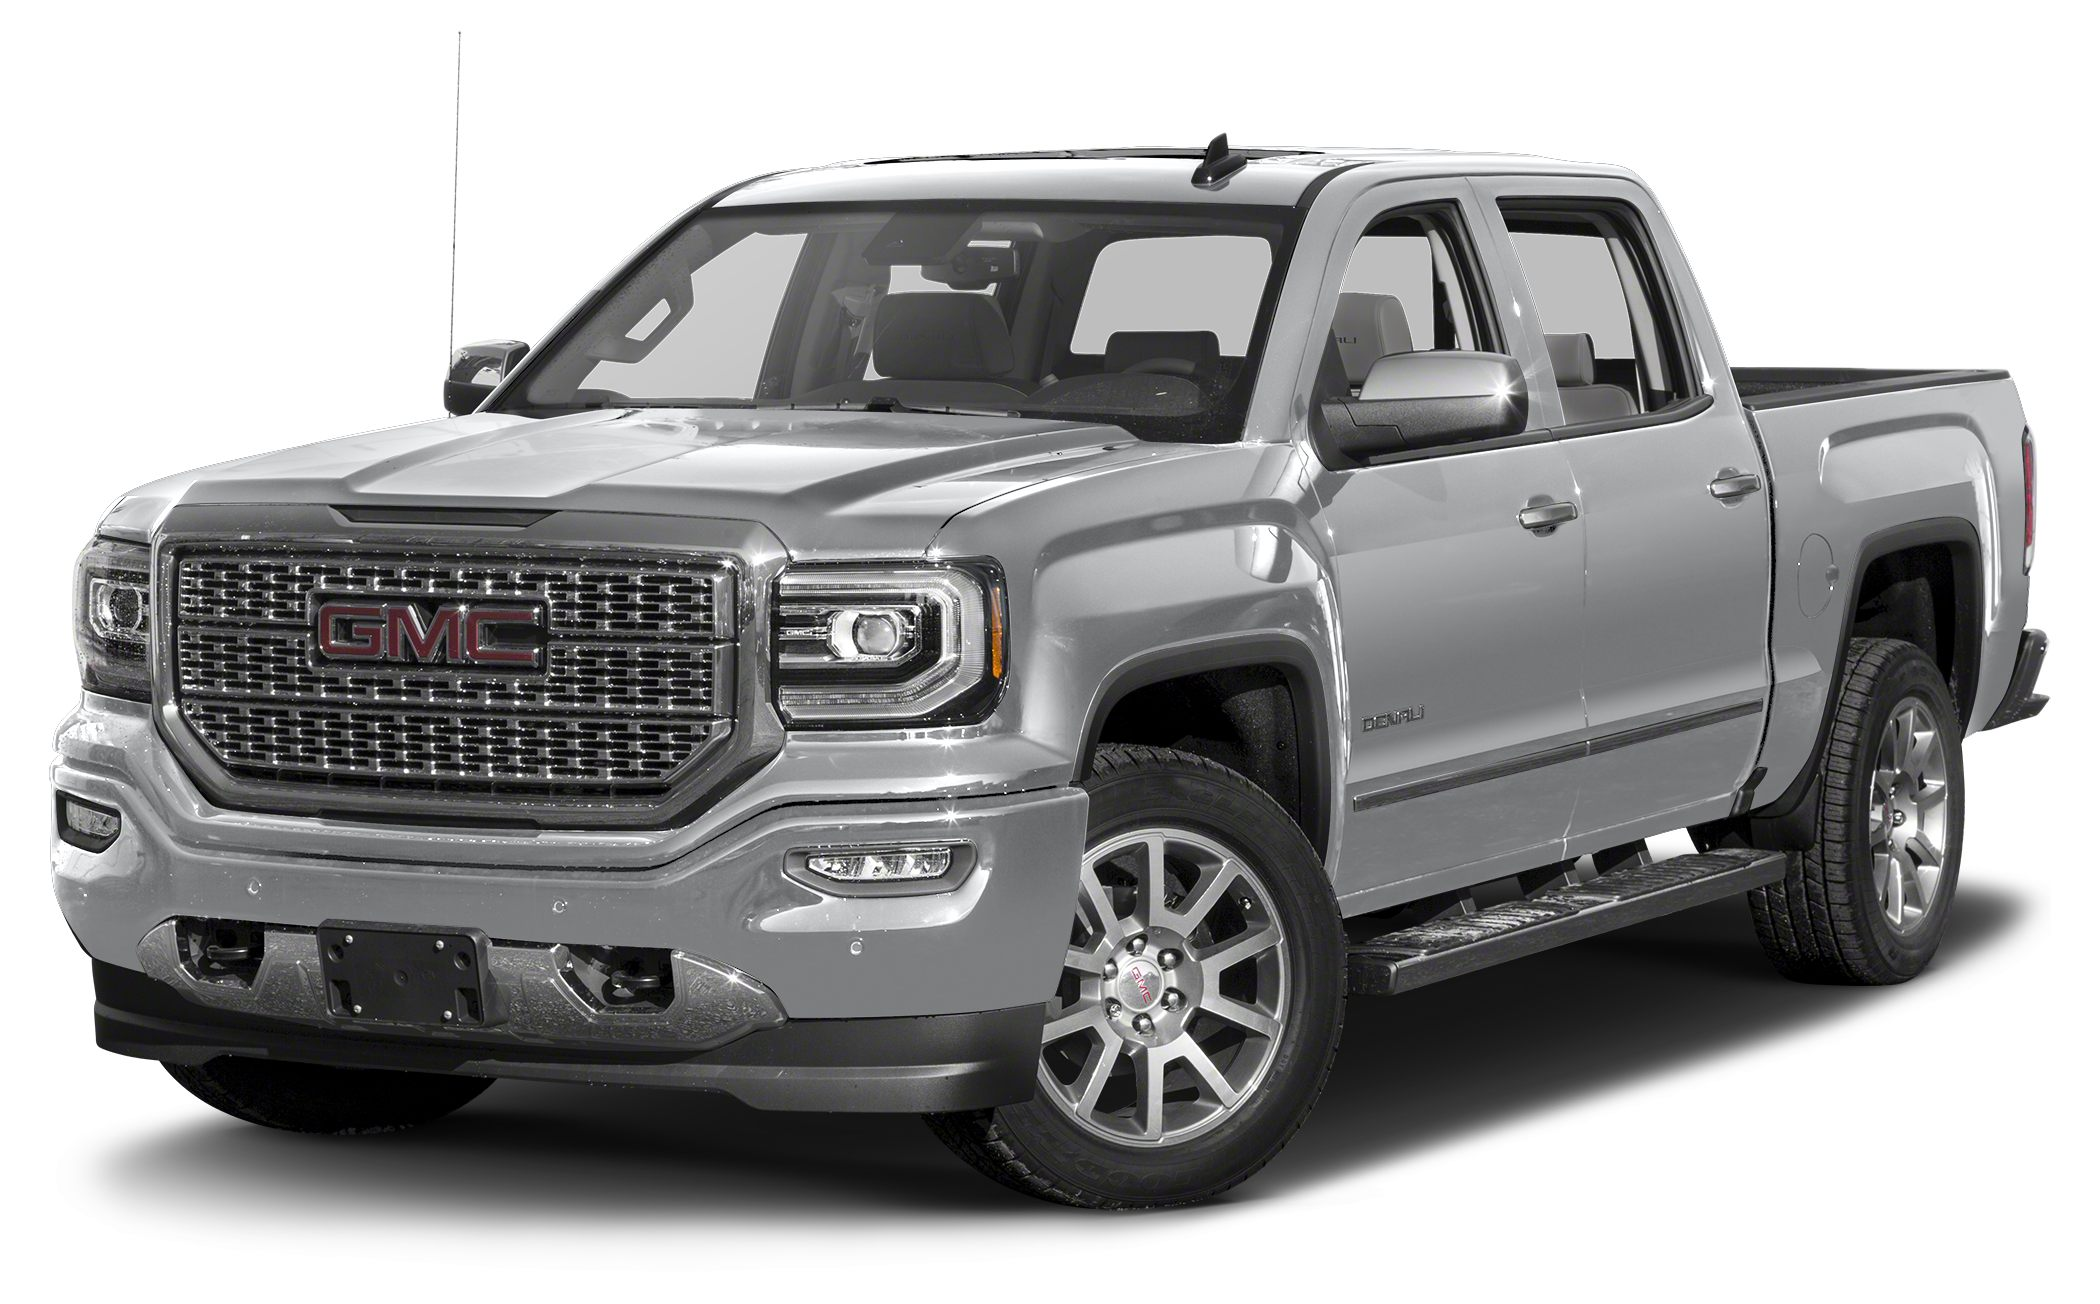 2018 GMC Sierra 1500 Denali Dont miss out on this 2018 GMC Sierra 1500 Denali It comes with a ba